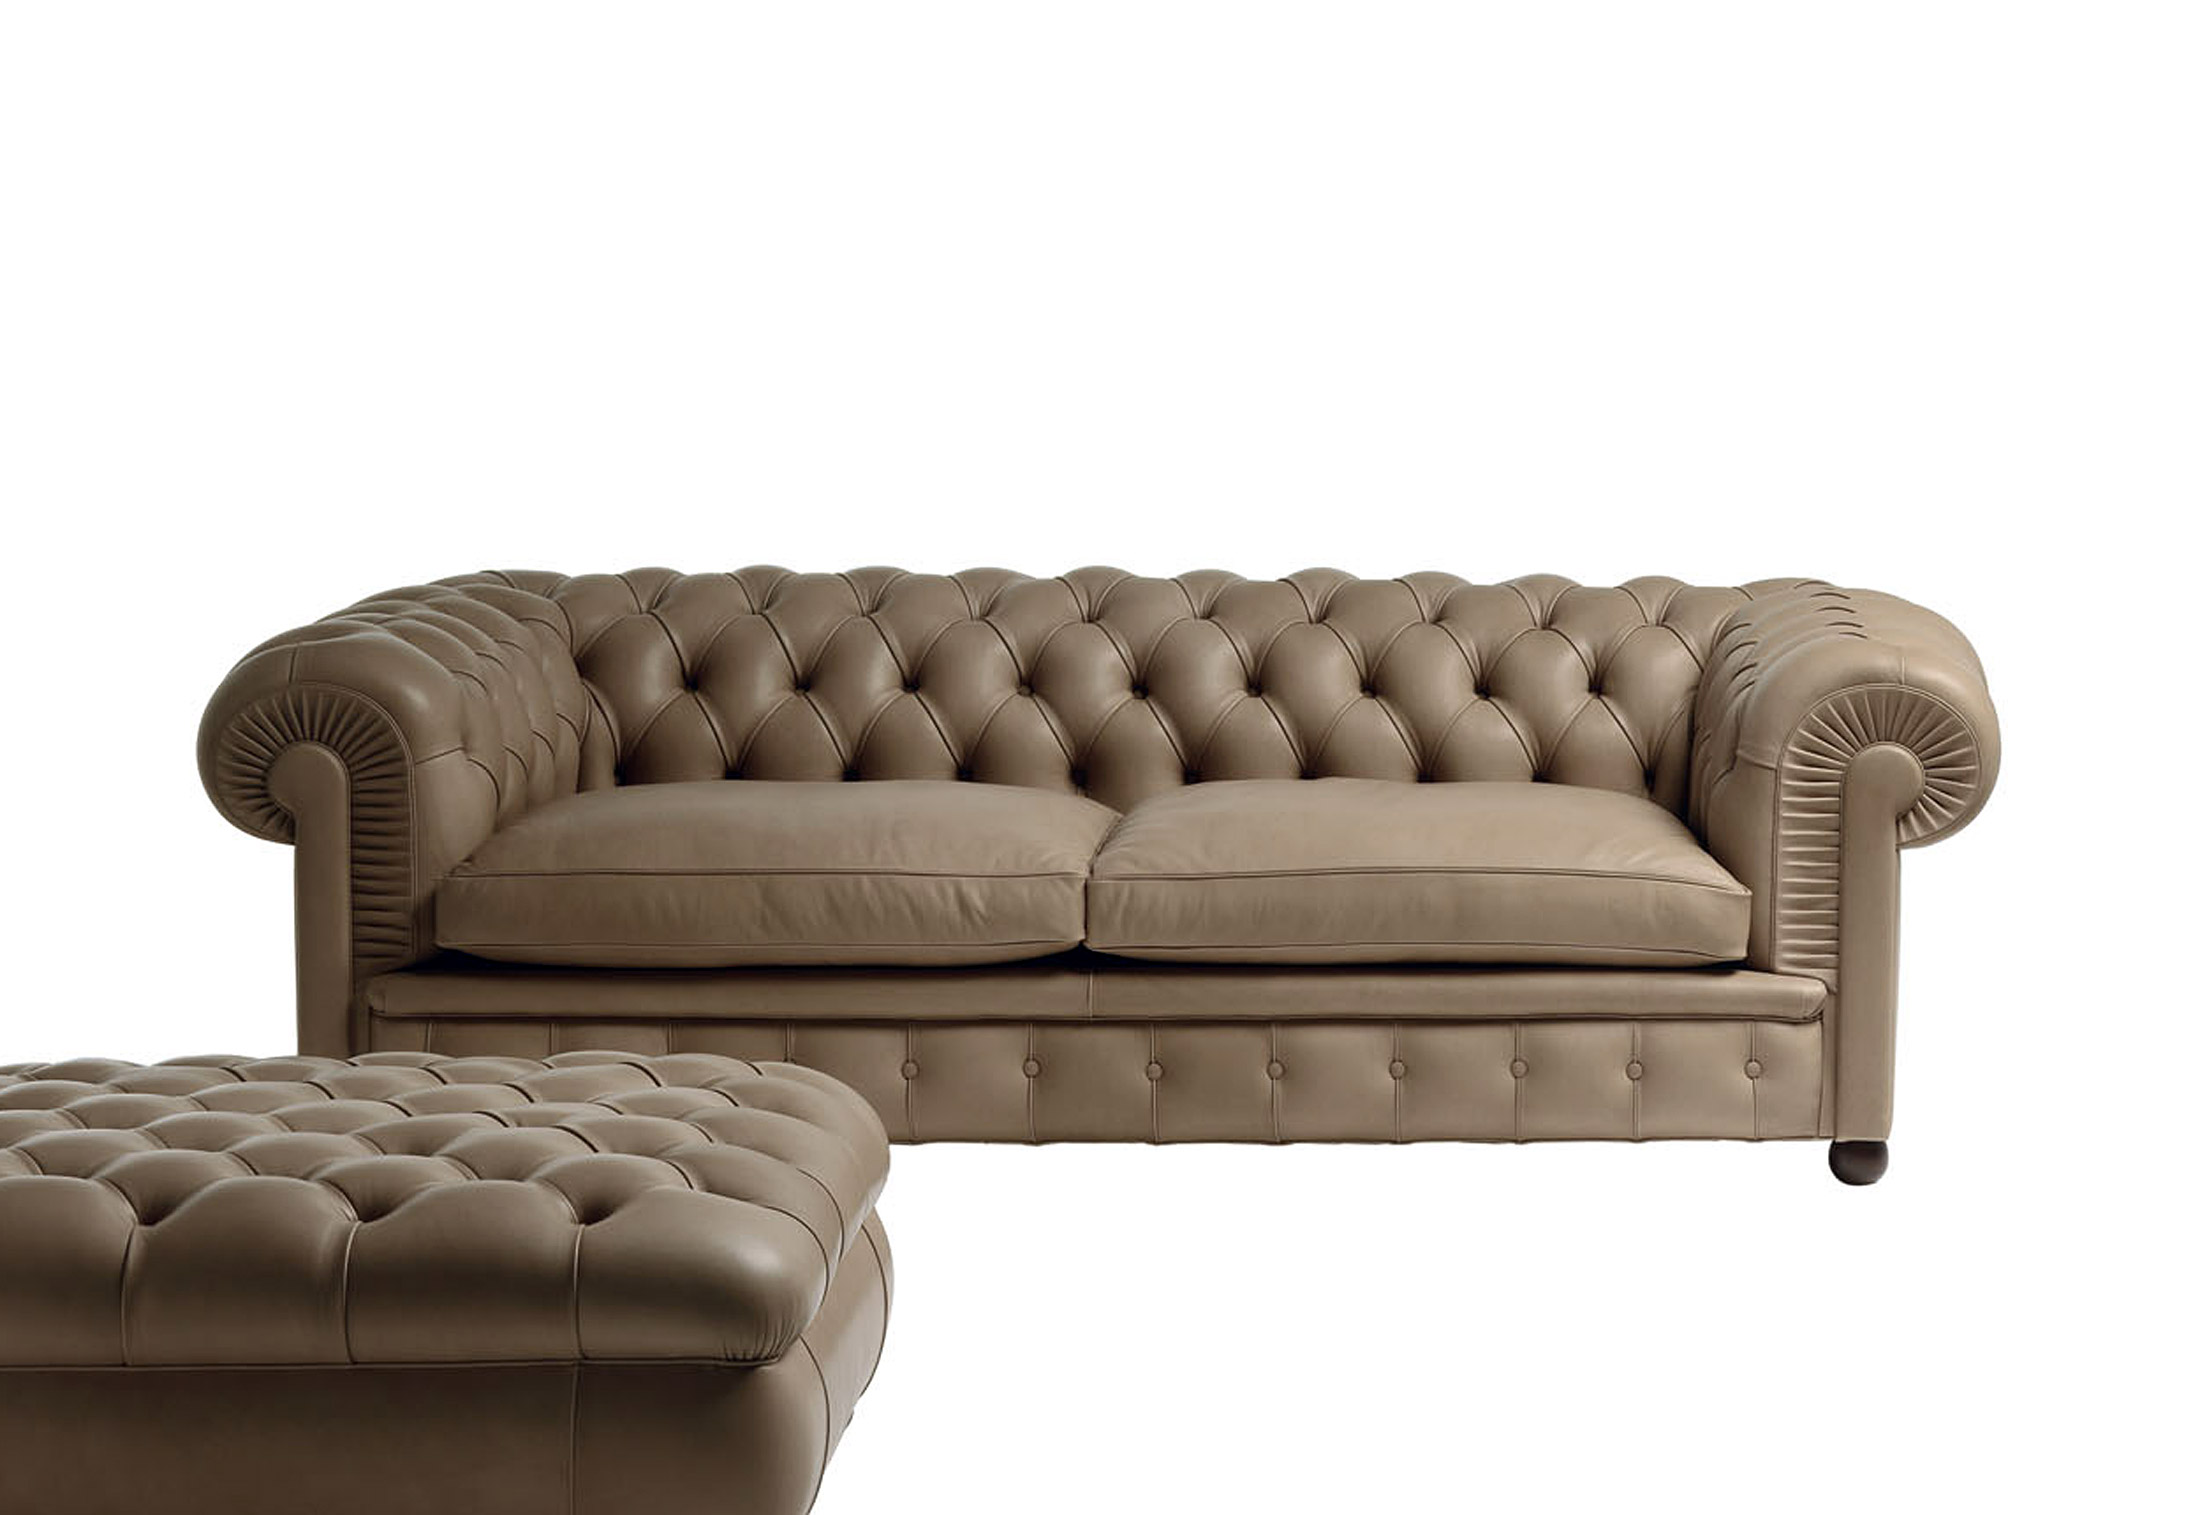 Chester One sofa by Poltrona Frau | STYLEPARK